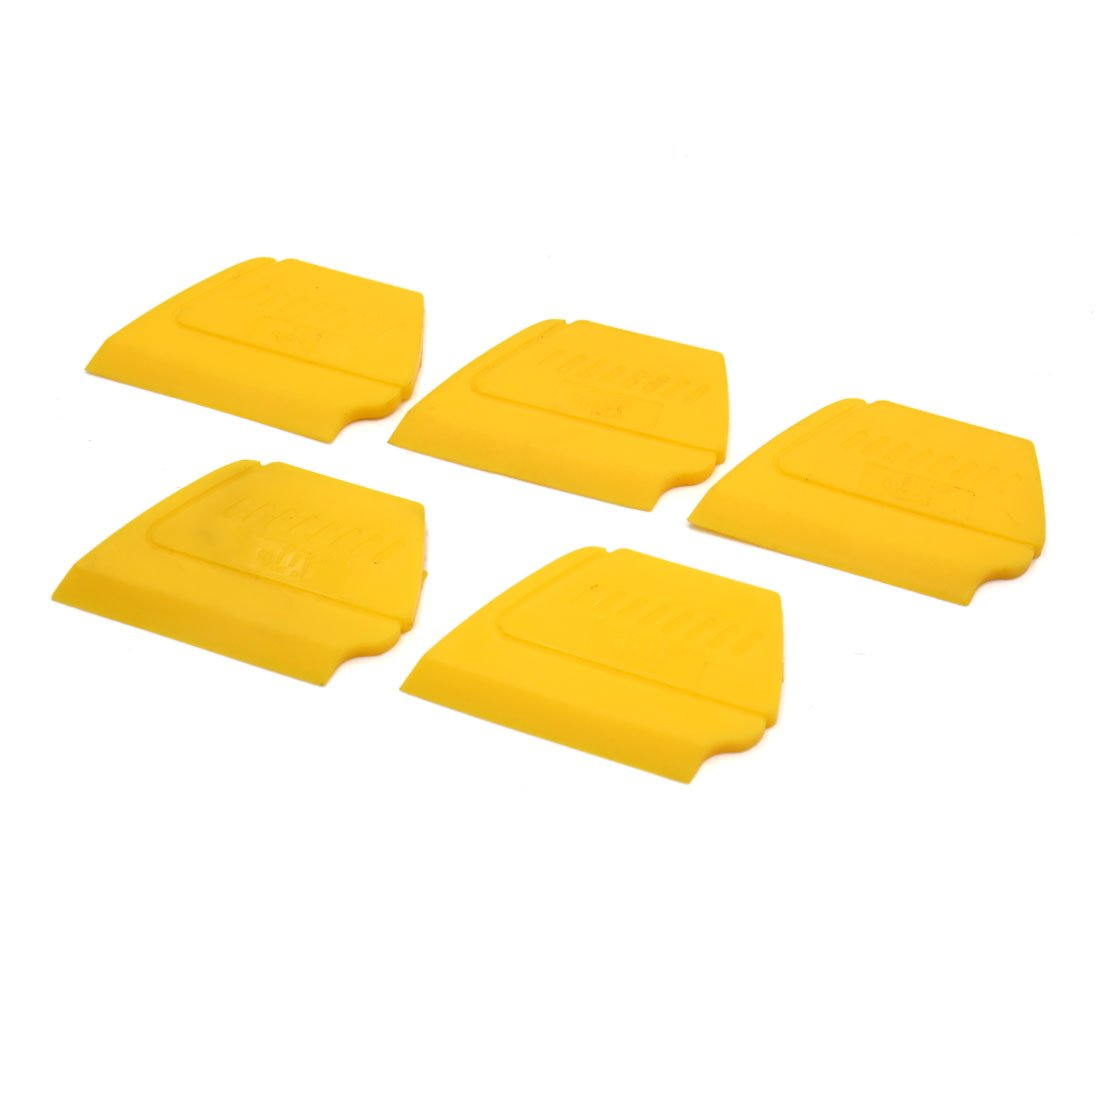 Uxcell a17072400ux1411 5Pcs Yellow Car Auto Windshield Tinting Scraper Edge Insert Squeegee Hand Tool, 5 Pack